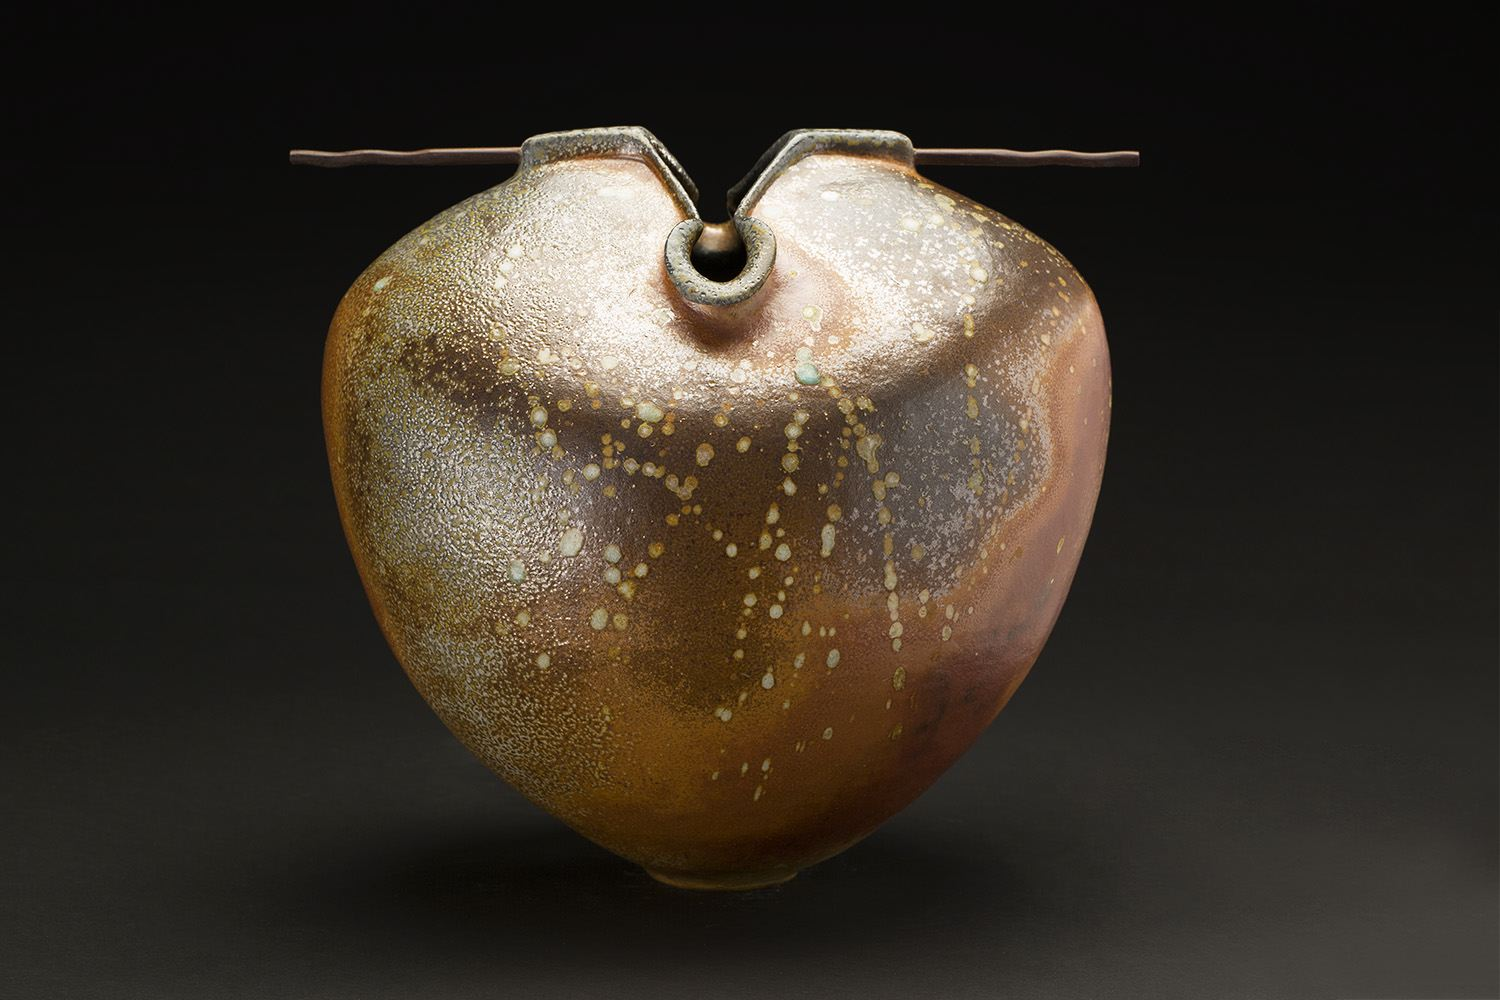 Melanie Ferguson    Flying Above The Storm  , 2016 Hand built stoneware, flashing slip, oxide stains, wood; fired in soda 13 x 14 x 10 inches 33 x 35.6 x 25.4 cm MFe 33